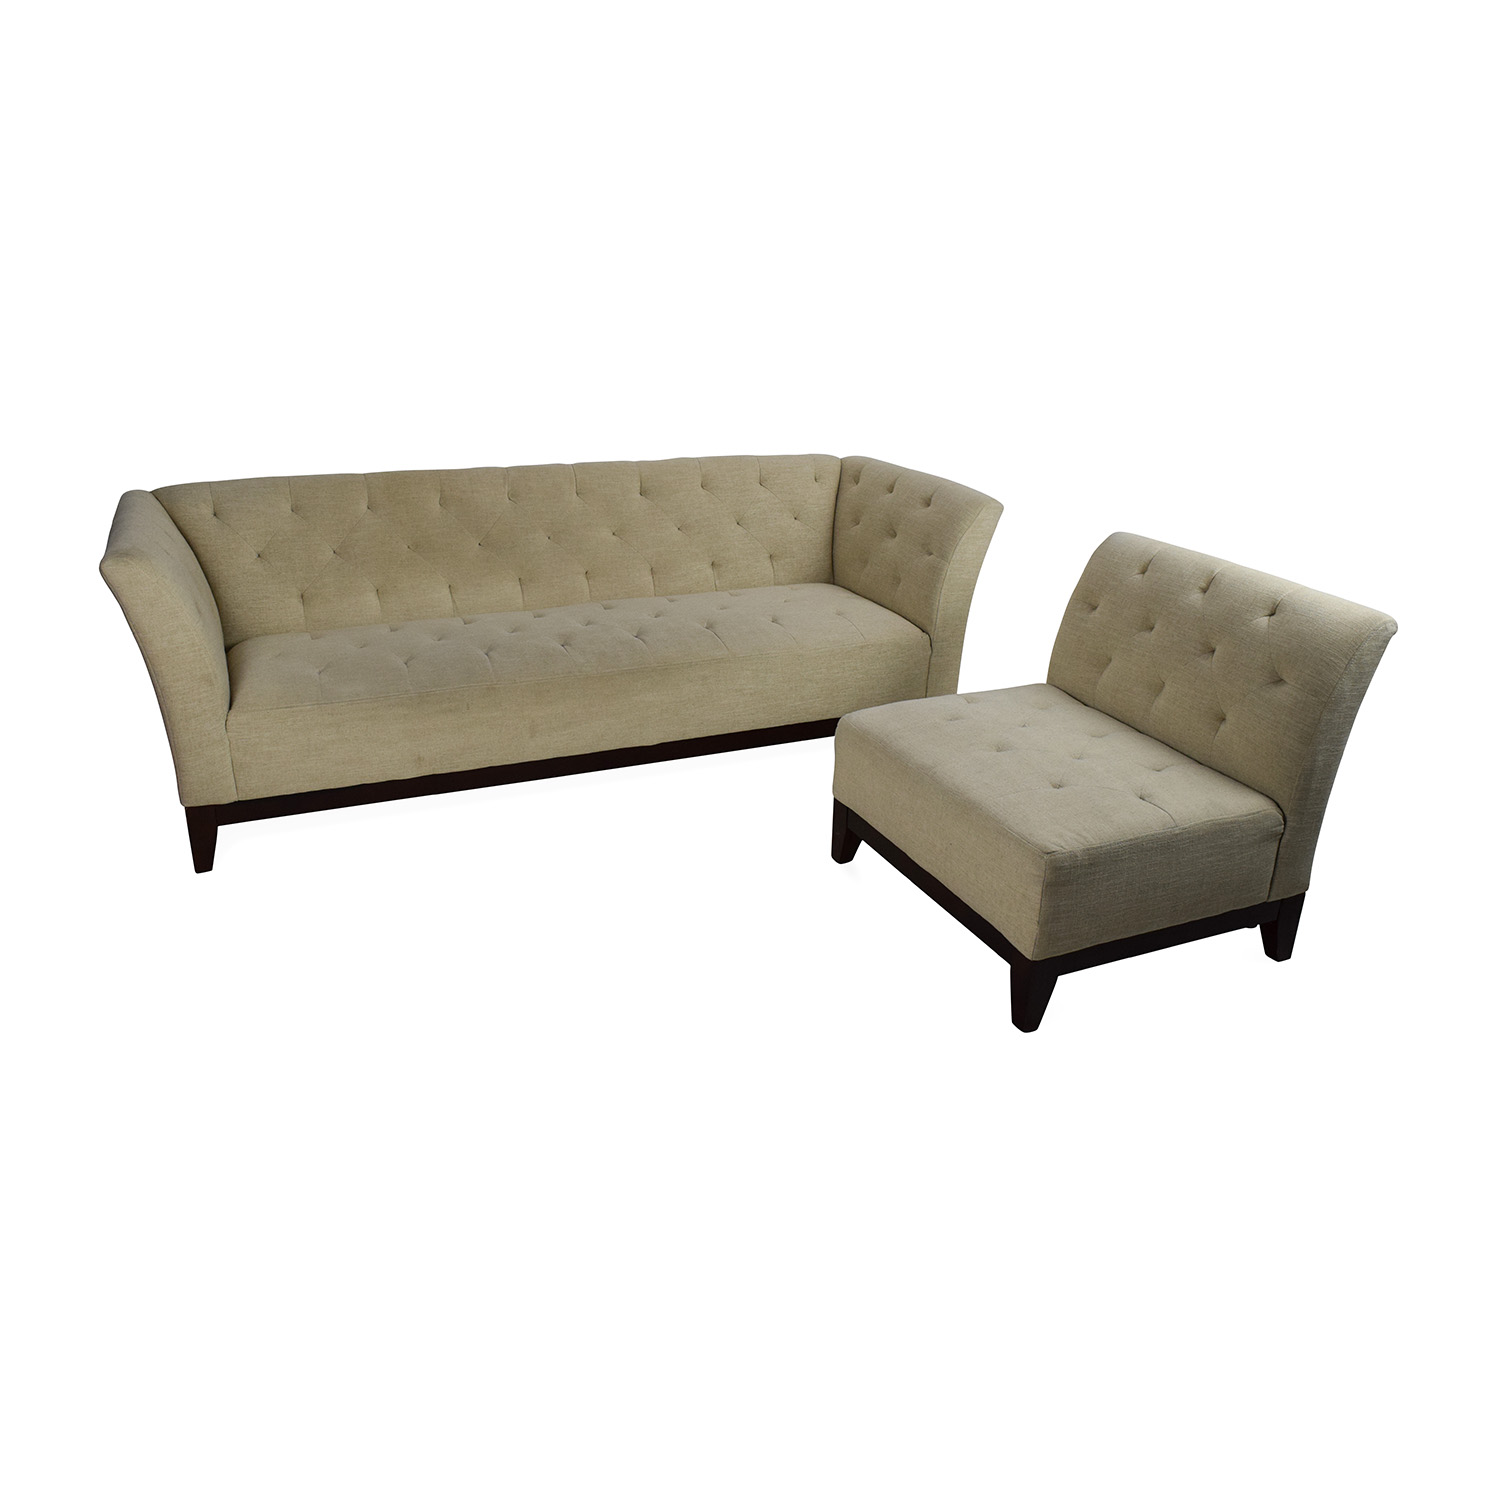 tufted sectionals sofas broken sofa leg 63 off macy 39s with modular chaise